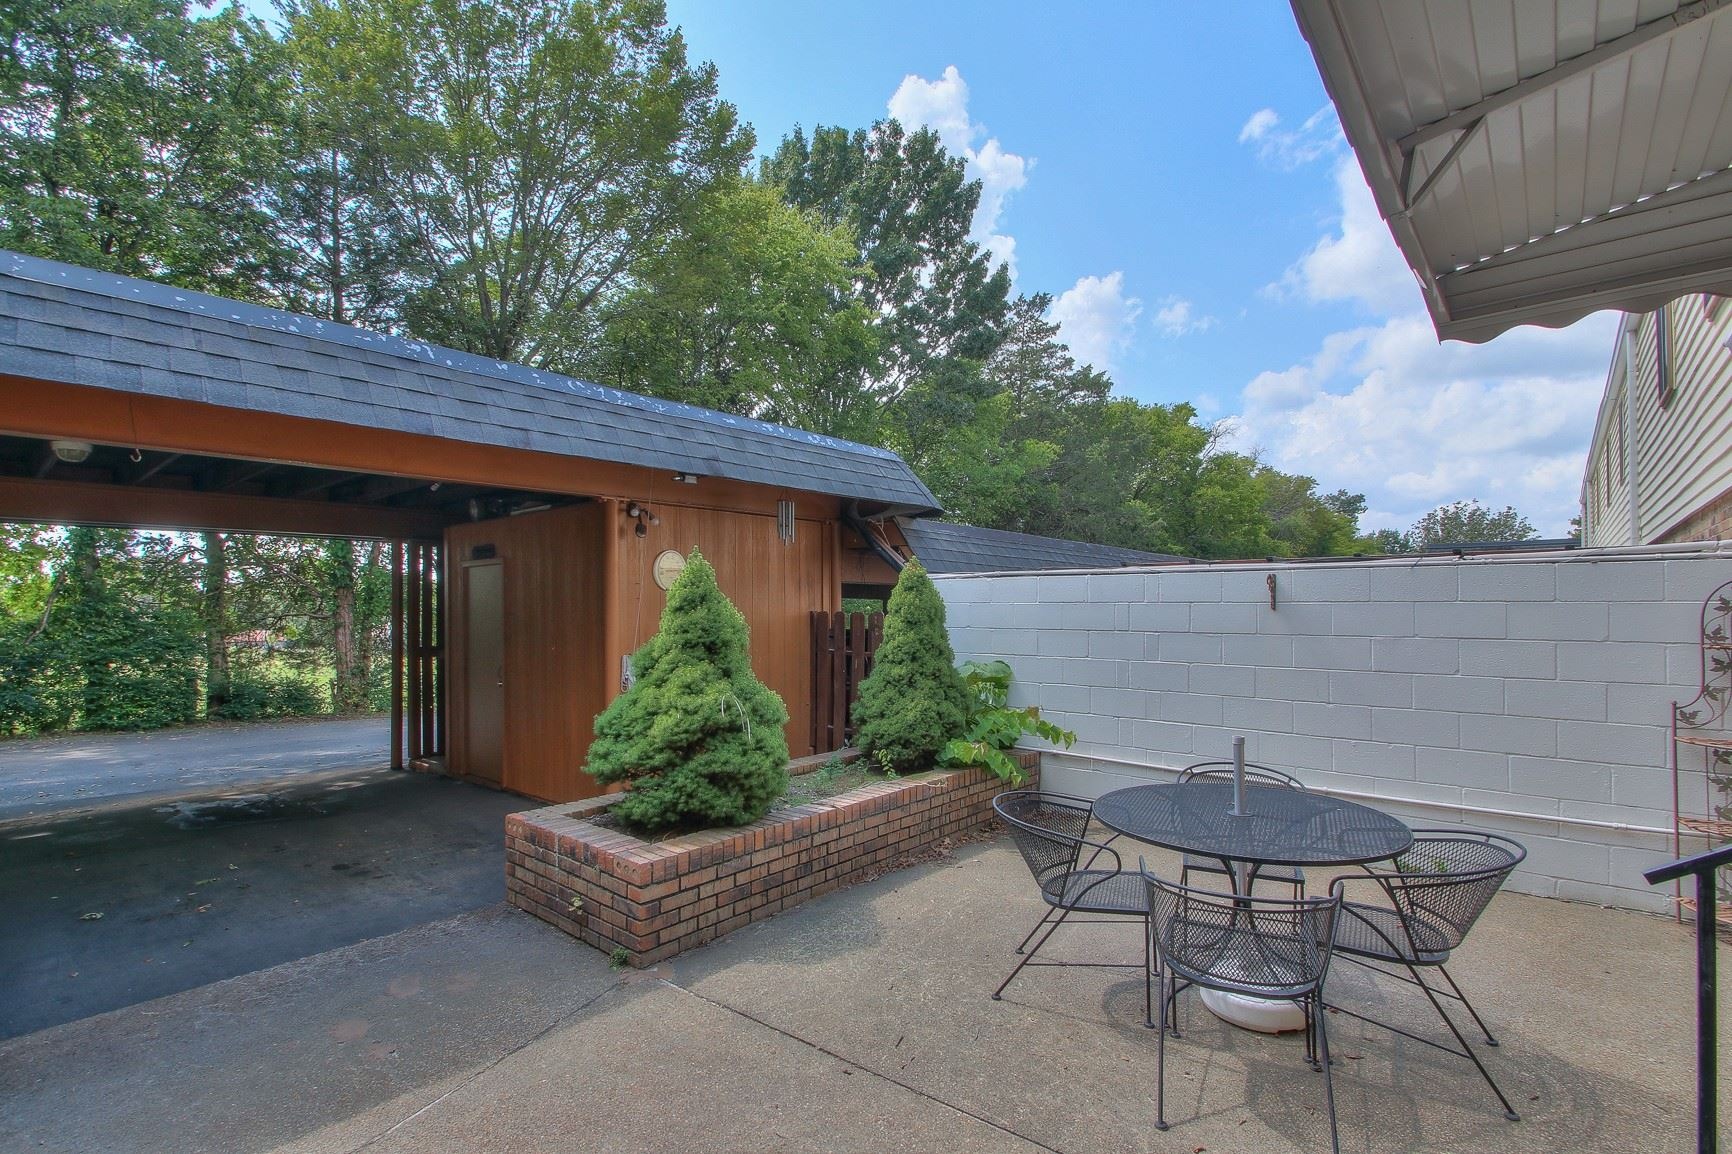 Photo of 194 Lake Chateau Dr, Hermitage, TN 37076 (MLS # 2291415)